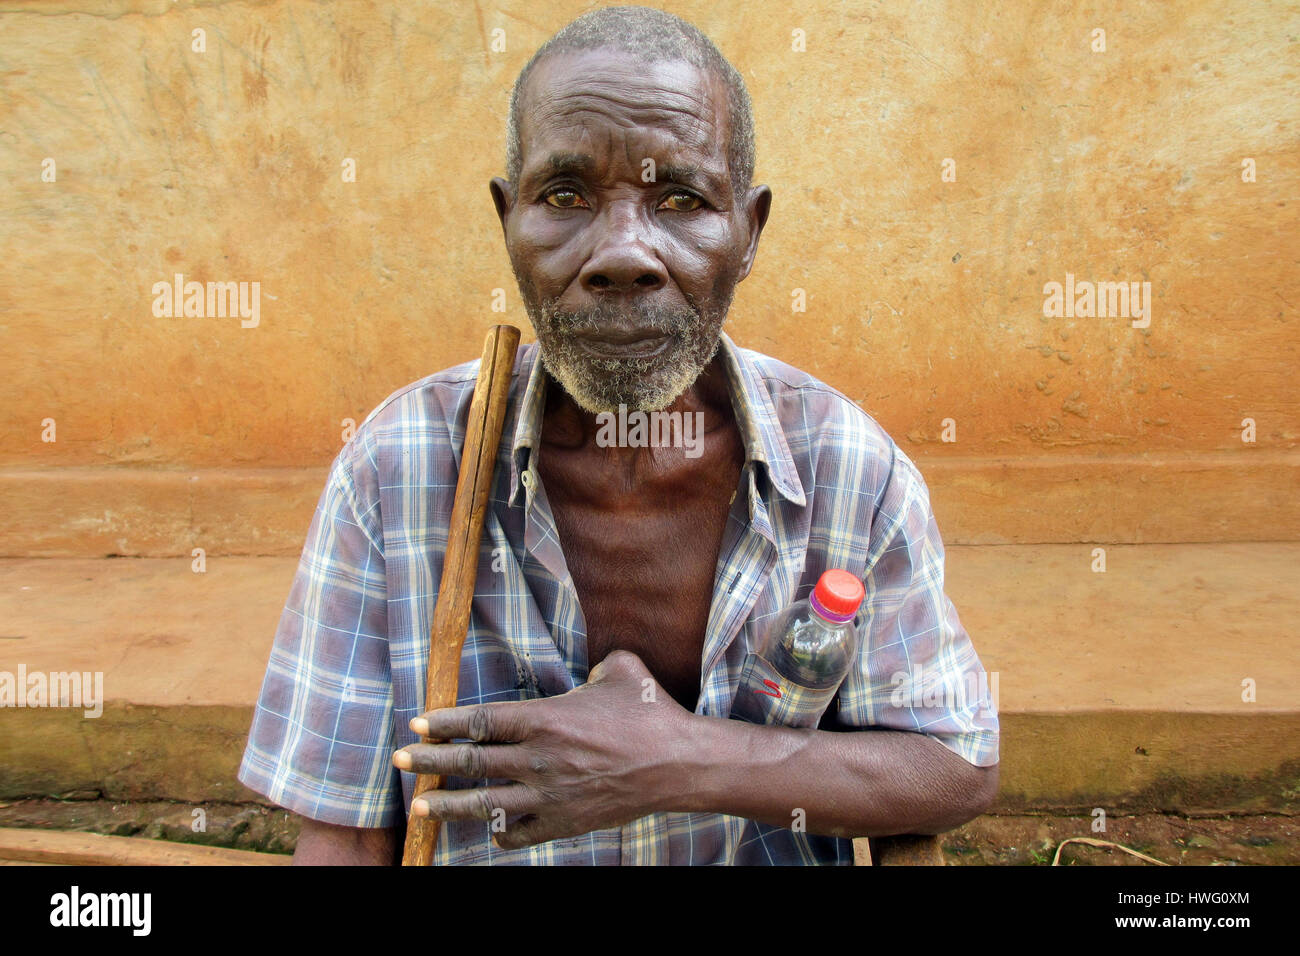 World War II veteran Aloysius Lubega is seen in front of his home in Mugomba village, Uganda, on February 09, 2017. Stock Photo